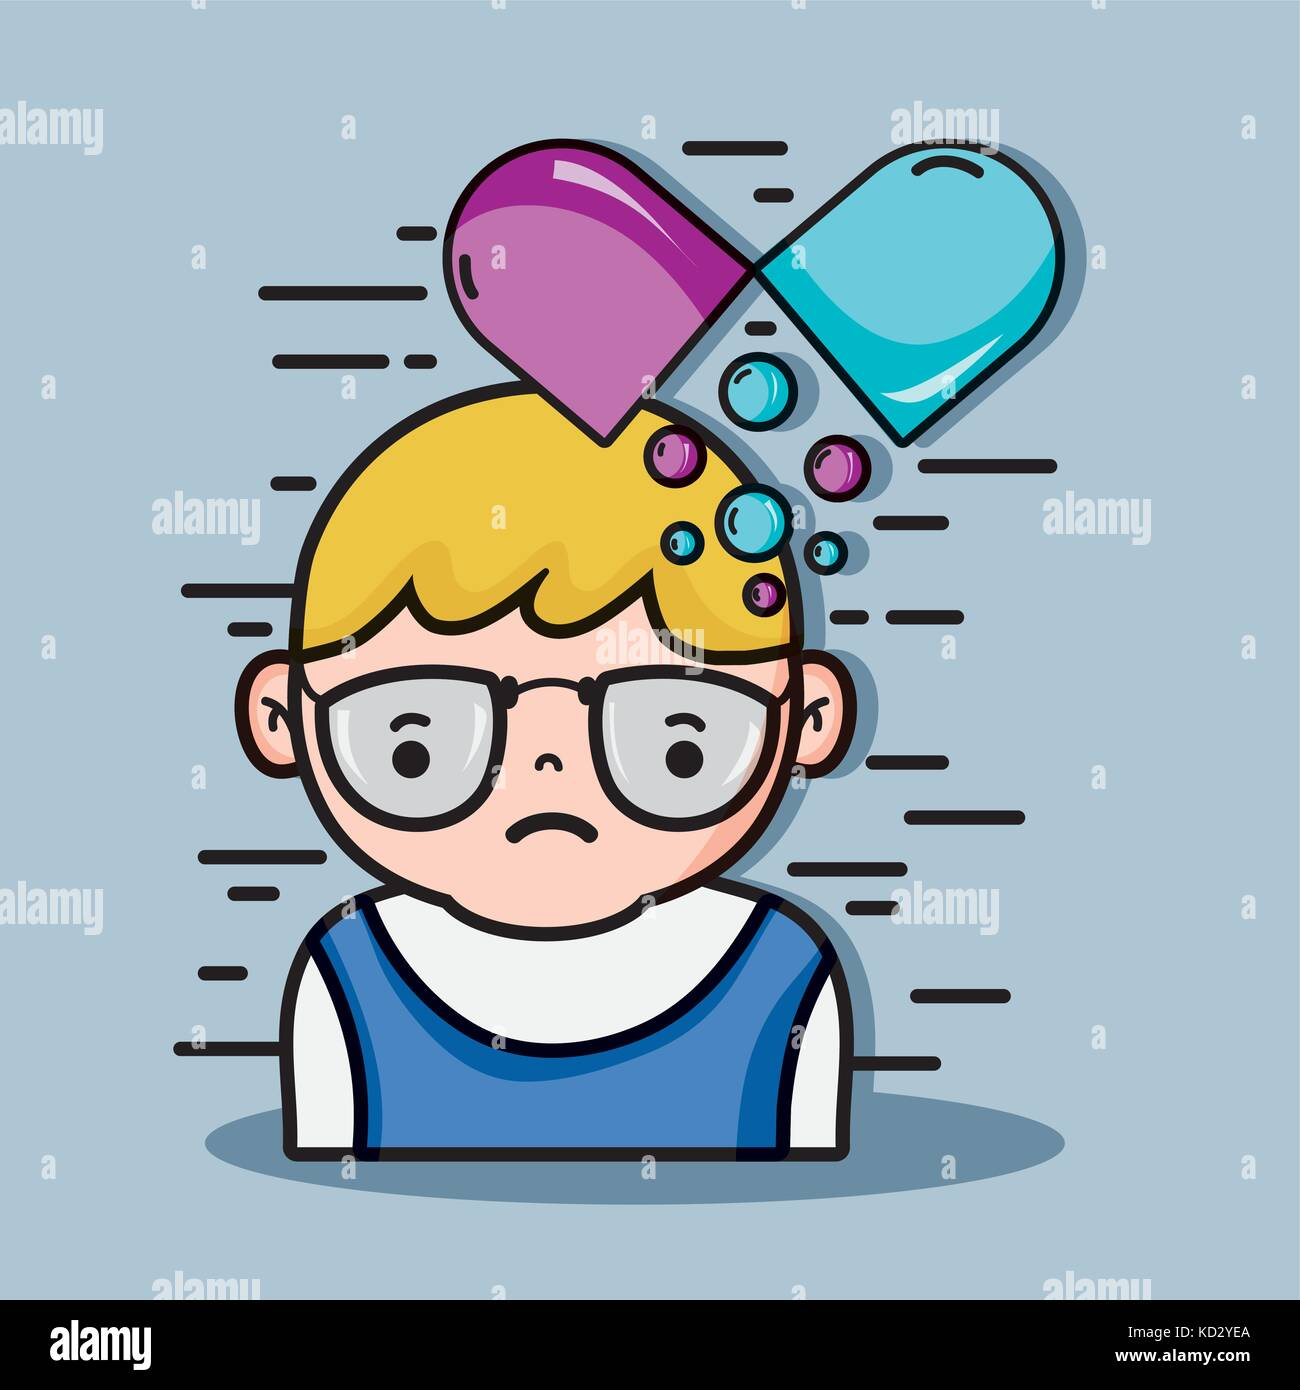 psychology analysis therapy inspiration design - Stock Vector